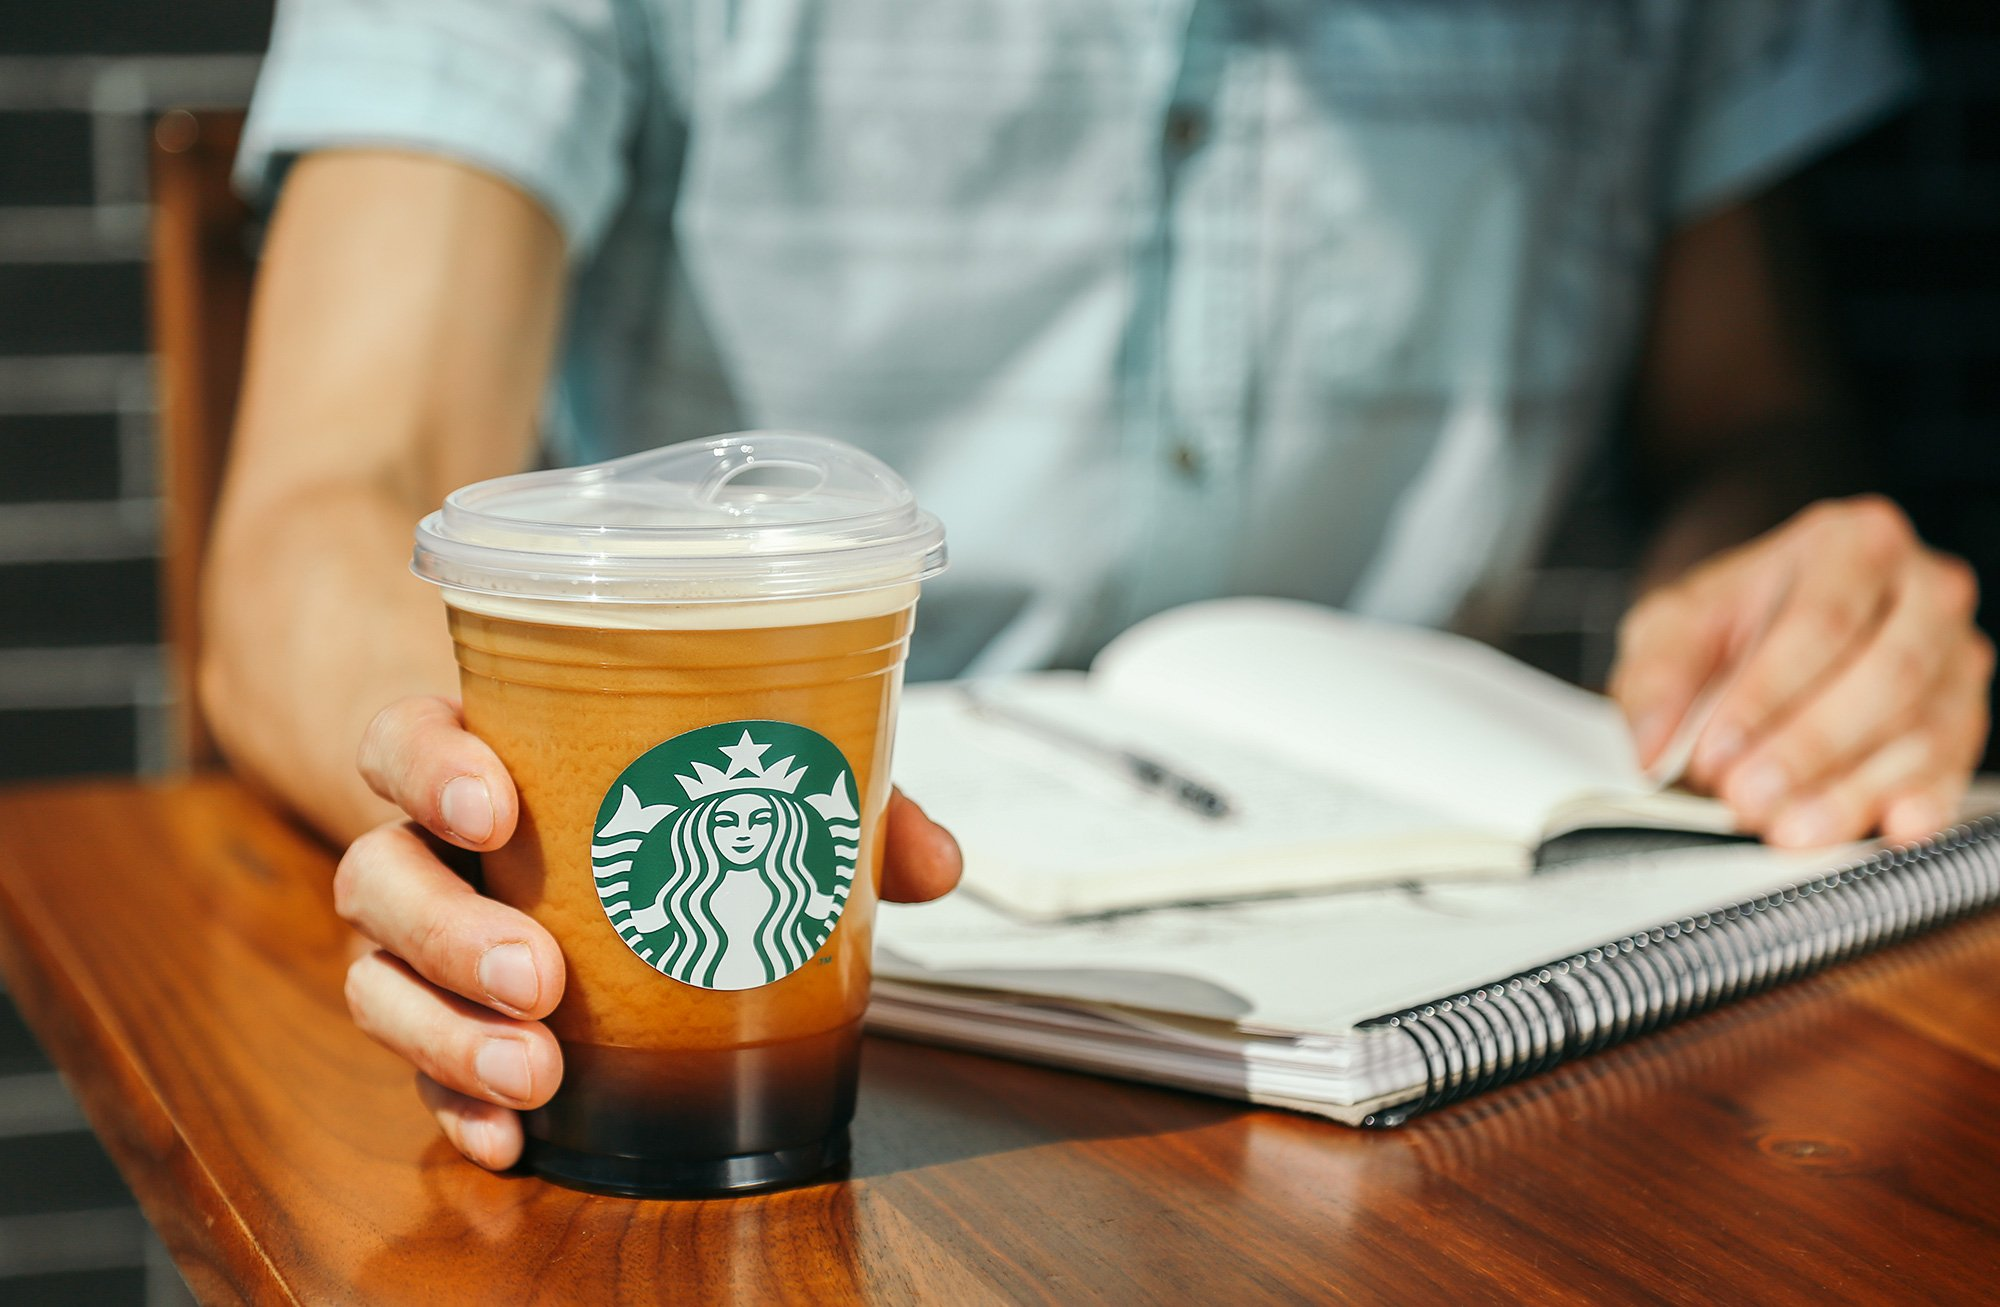 STARBUCKS PHASING OUT PLASTIC STRAWS